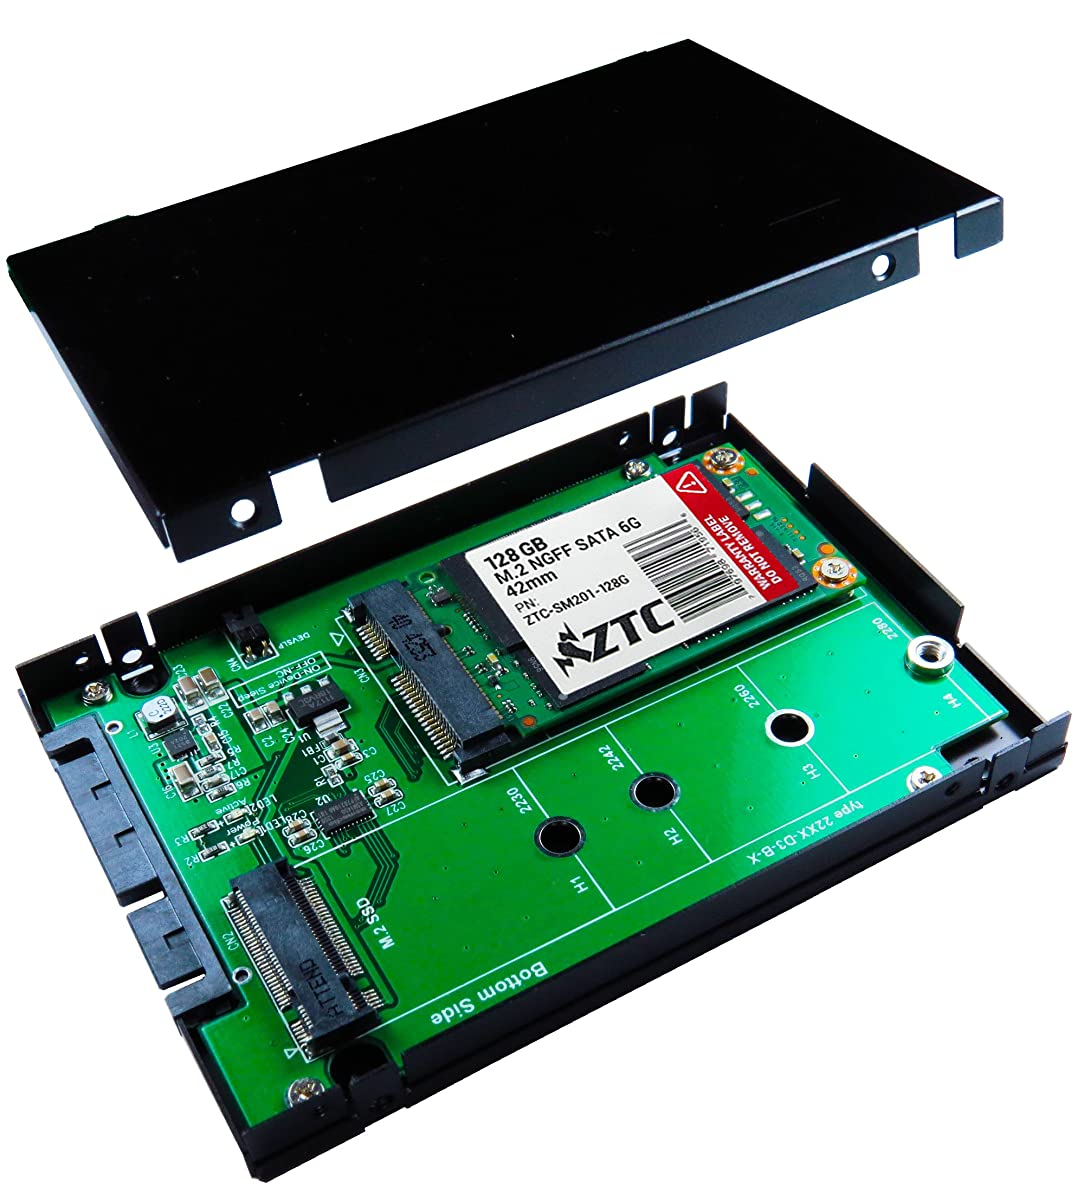 """ZTC 2-in-1 Sky 2.5"""" Enclosure M.2 (NGFF) or mSATA SSD to SATA III Board Adapter. Multi Size Fit with High Speed 6.0GB/s. Model ZTC-EN005"""